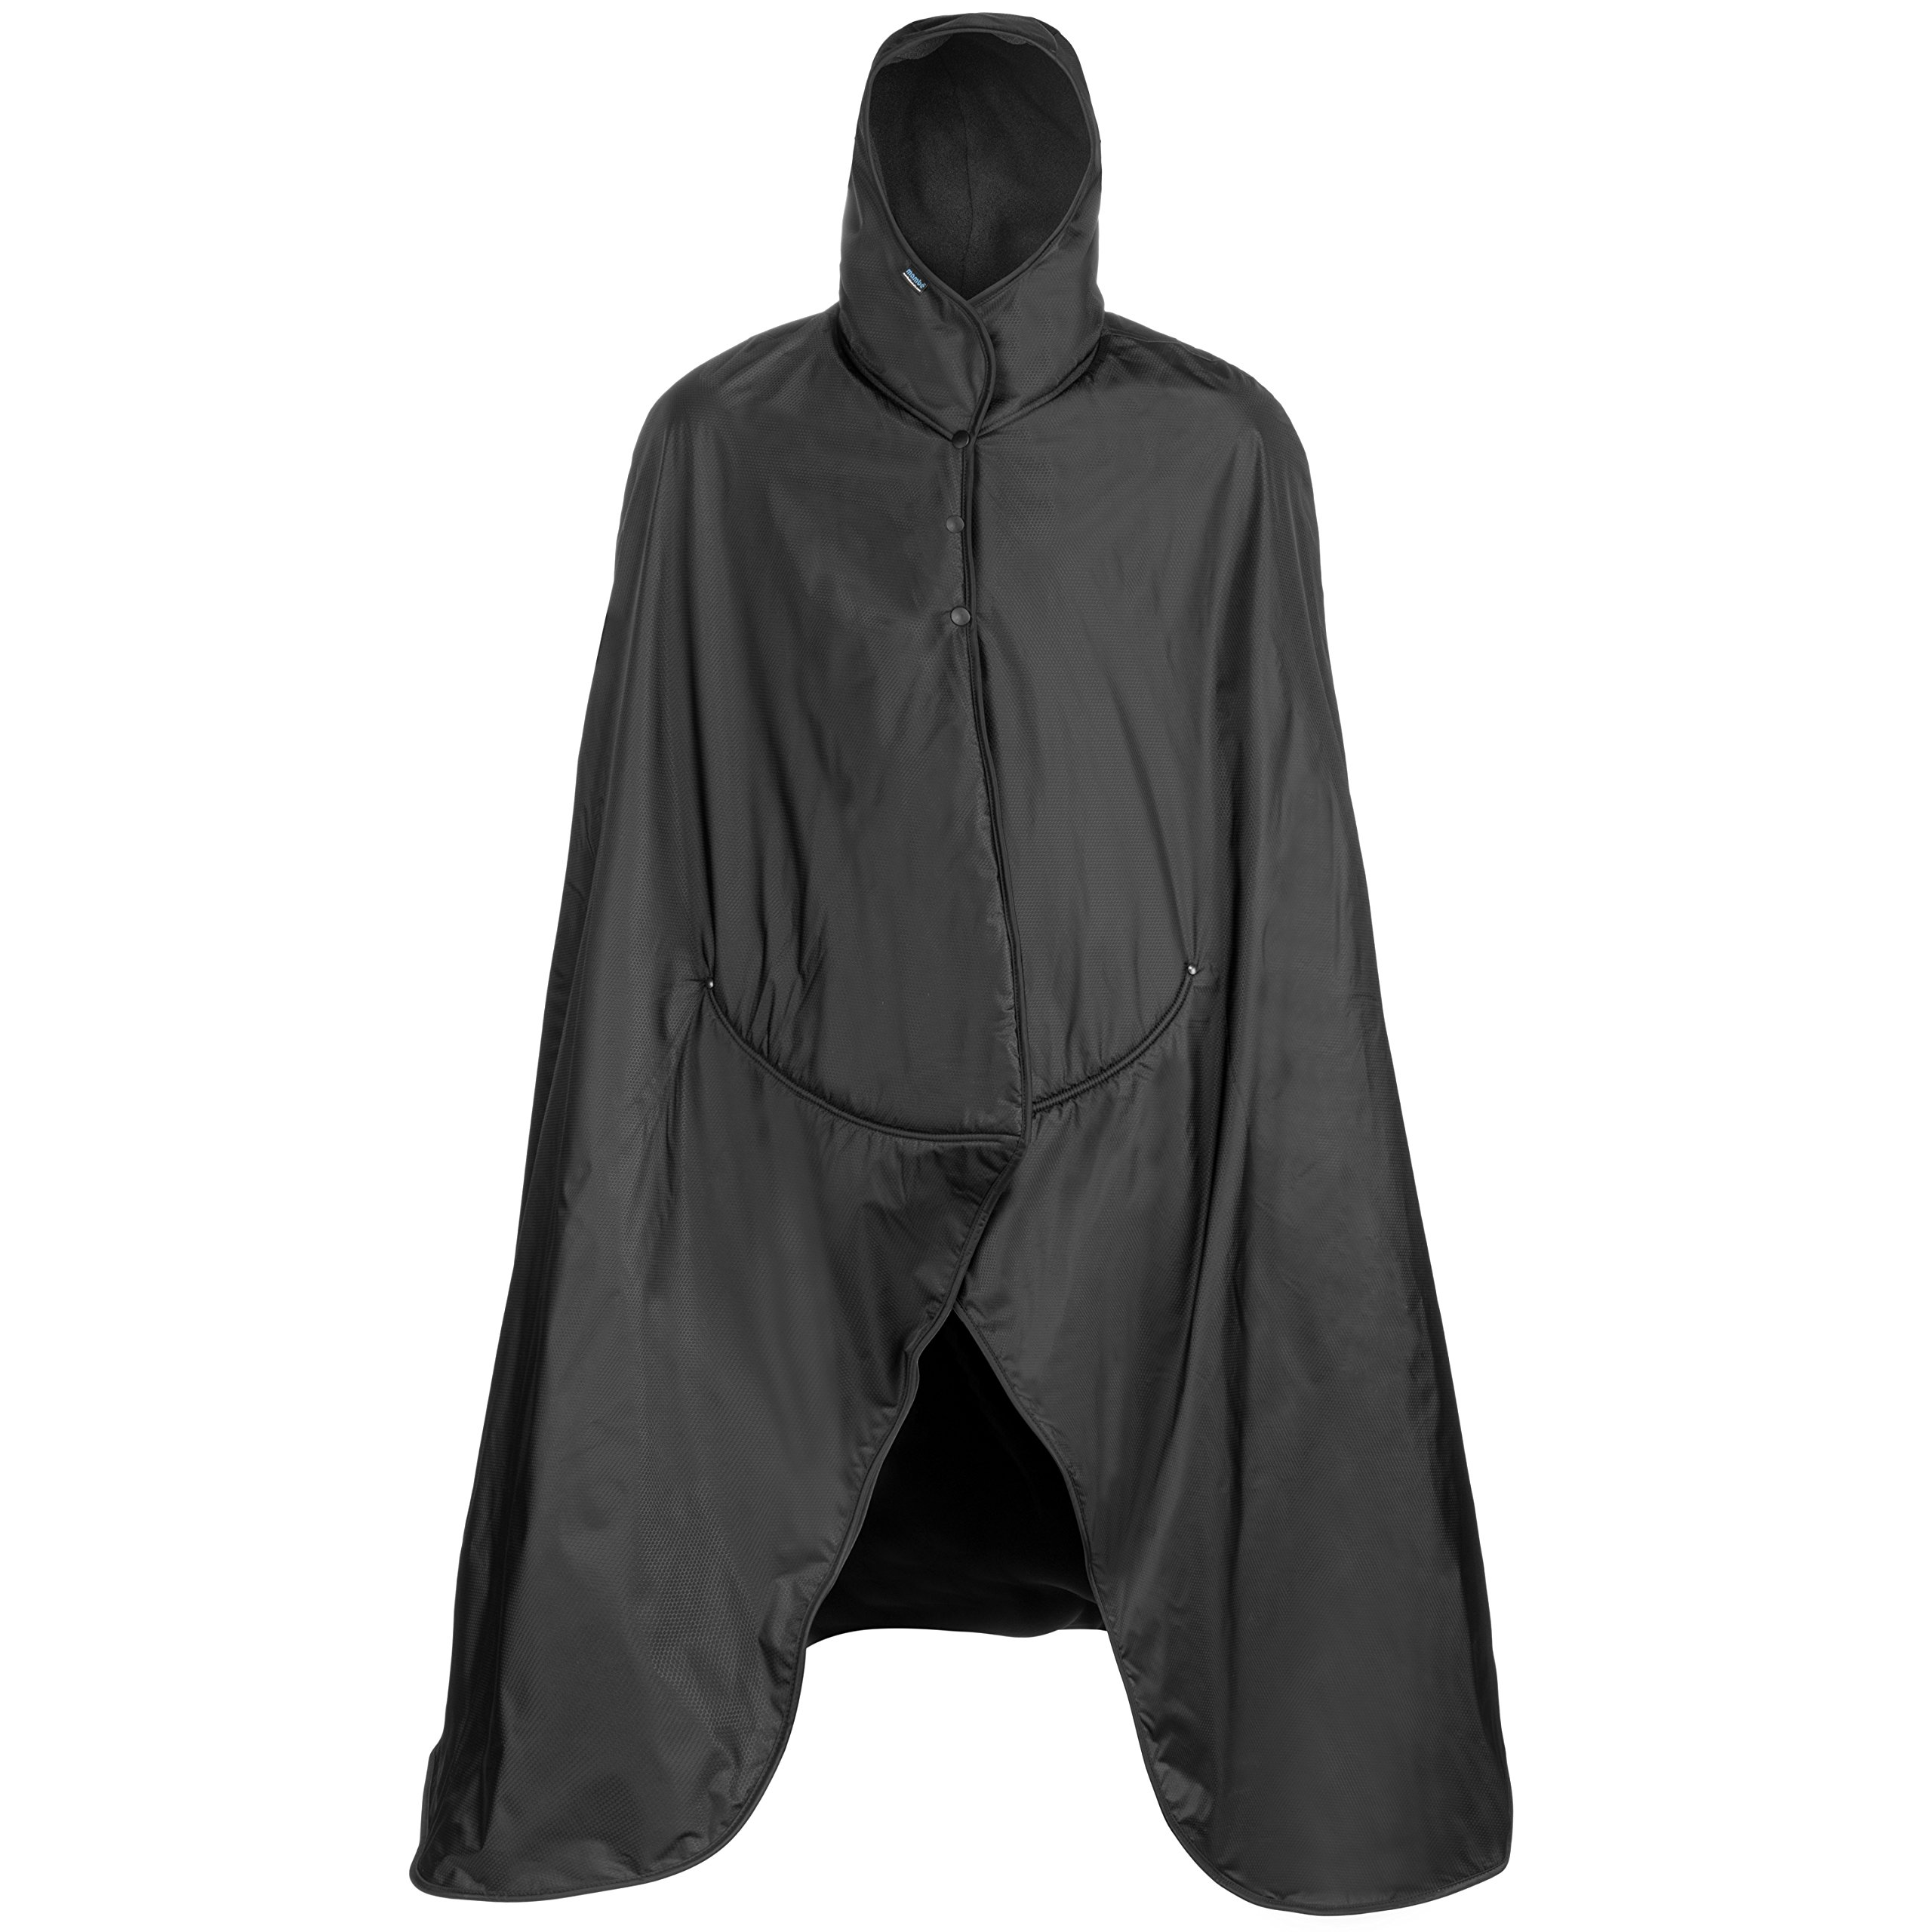 Mambe Extreme Weather 100% Waterproof/Windproof Hooded Blanket with Premium Stuff Sack (Size: XL, Black-Black) Made in The USA by Mambe